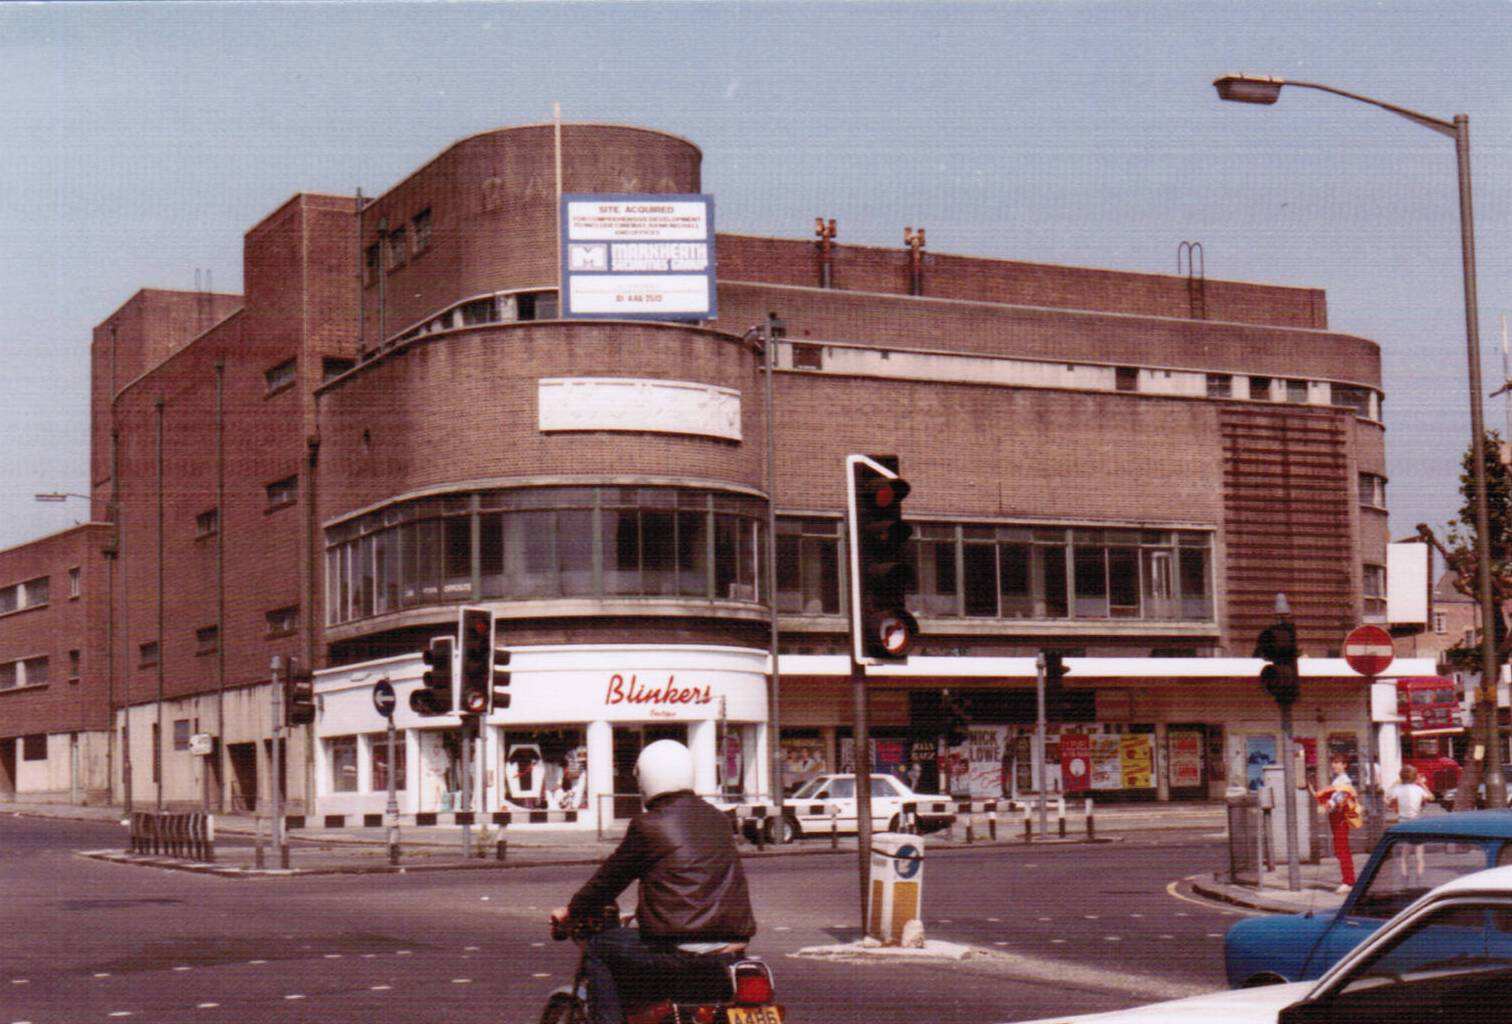 Gamont Cinema, North Finchley